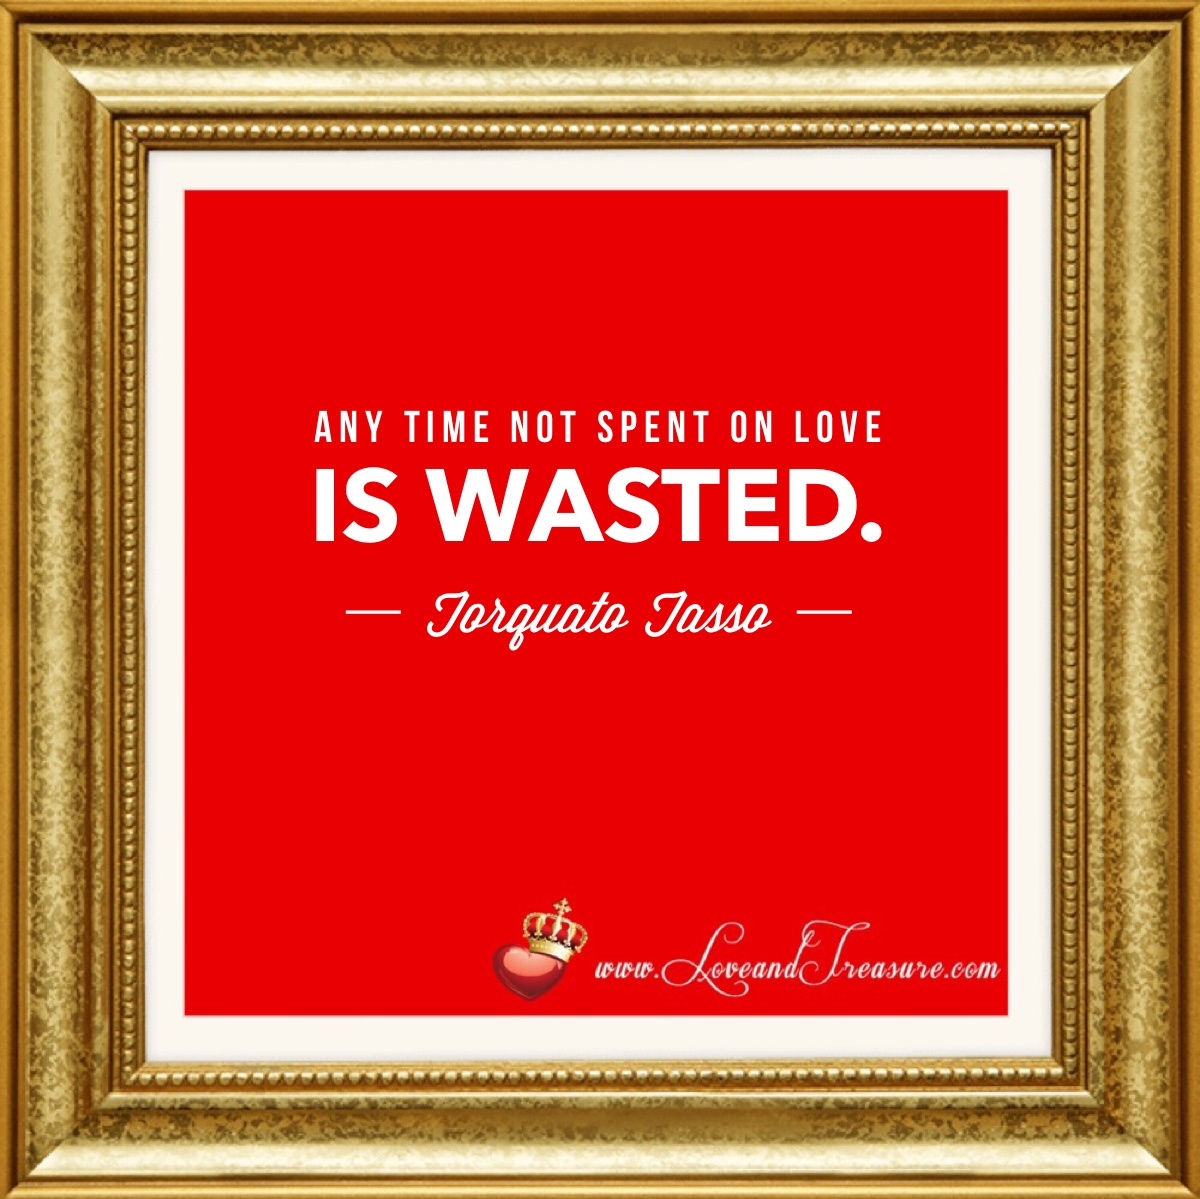 any time not spent on love is wasted, Torquato Tasso, love and treasure, www.loveandtreasure.com